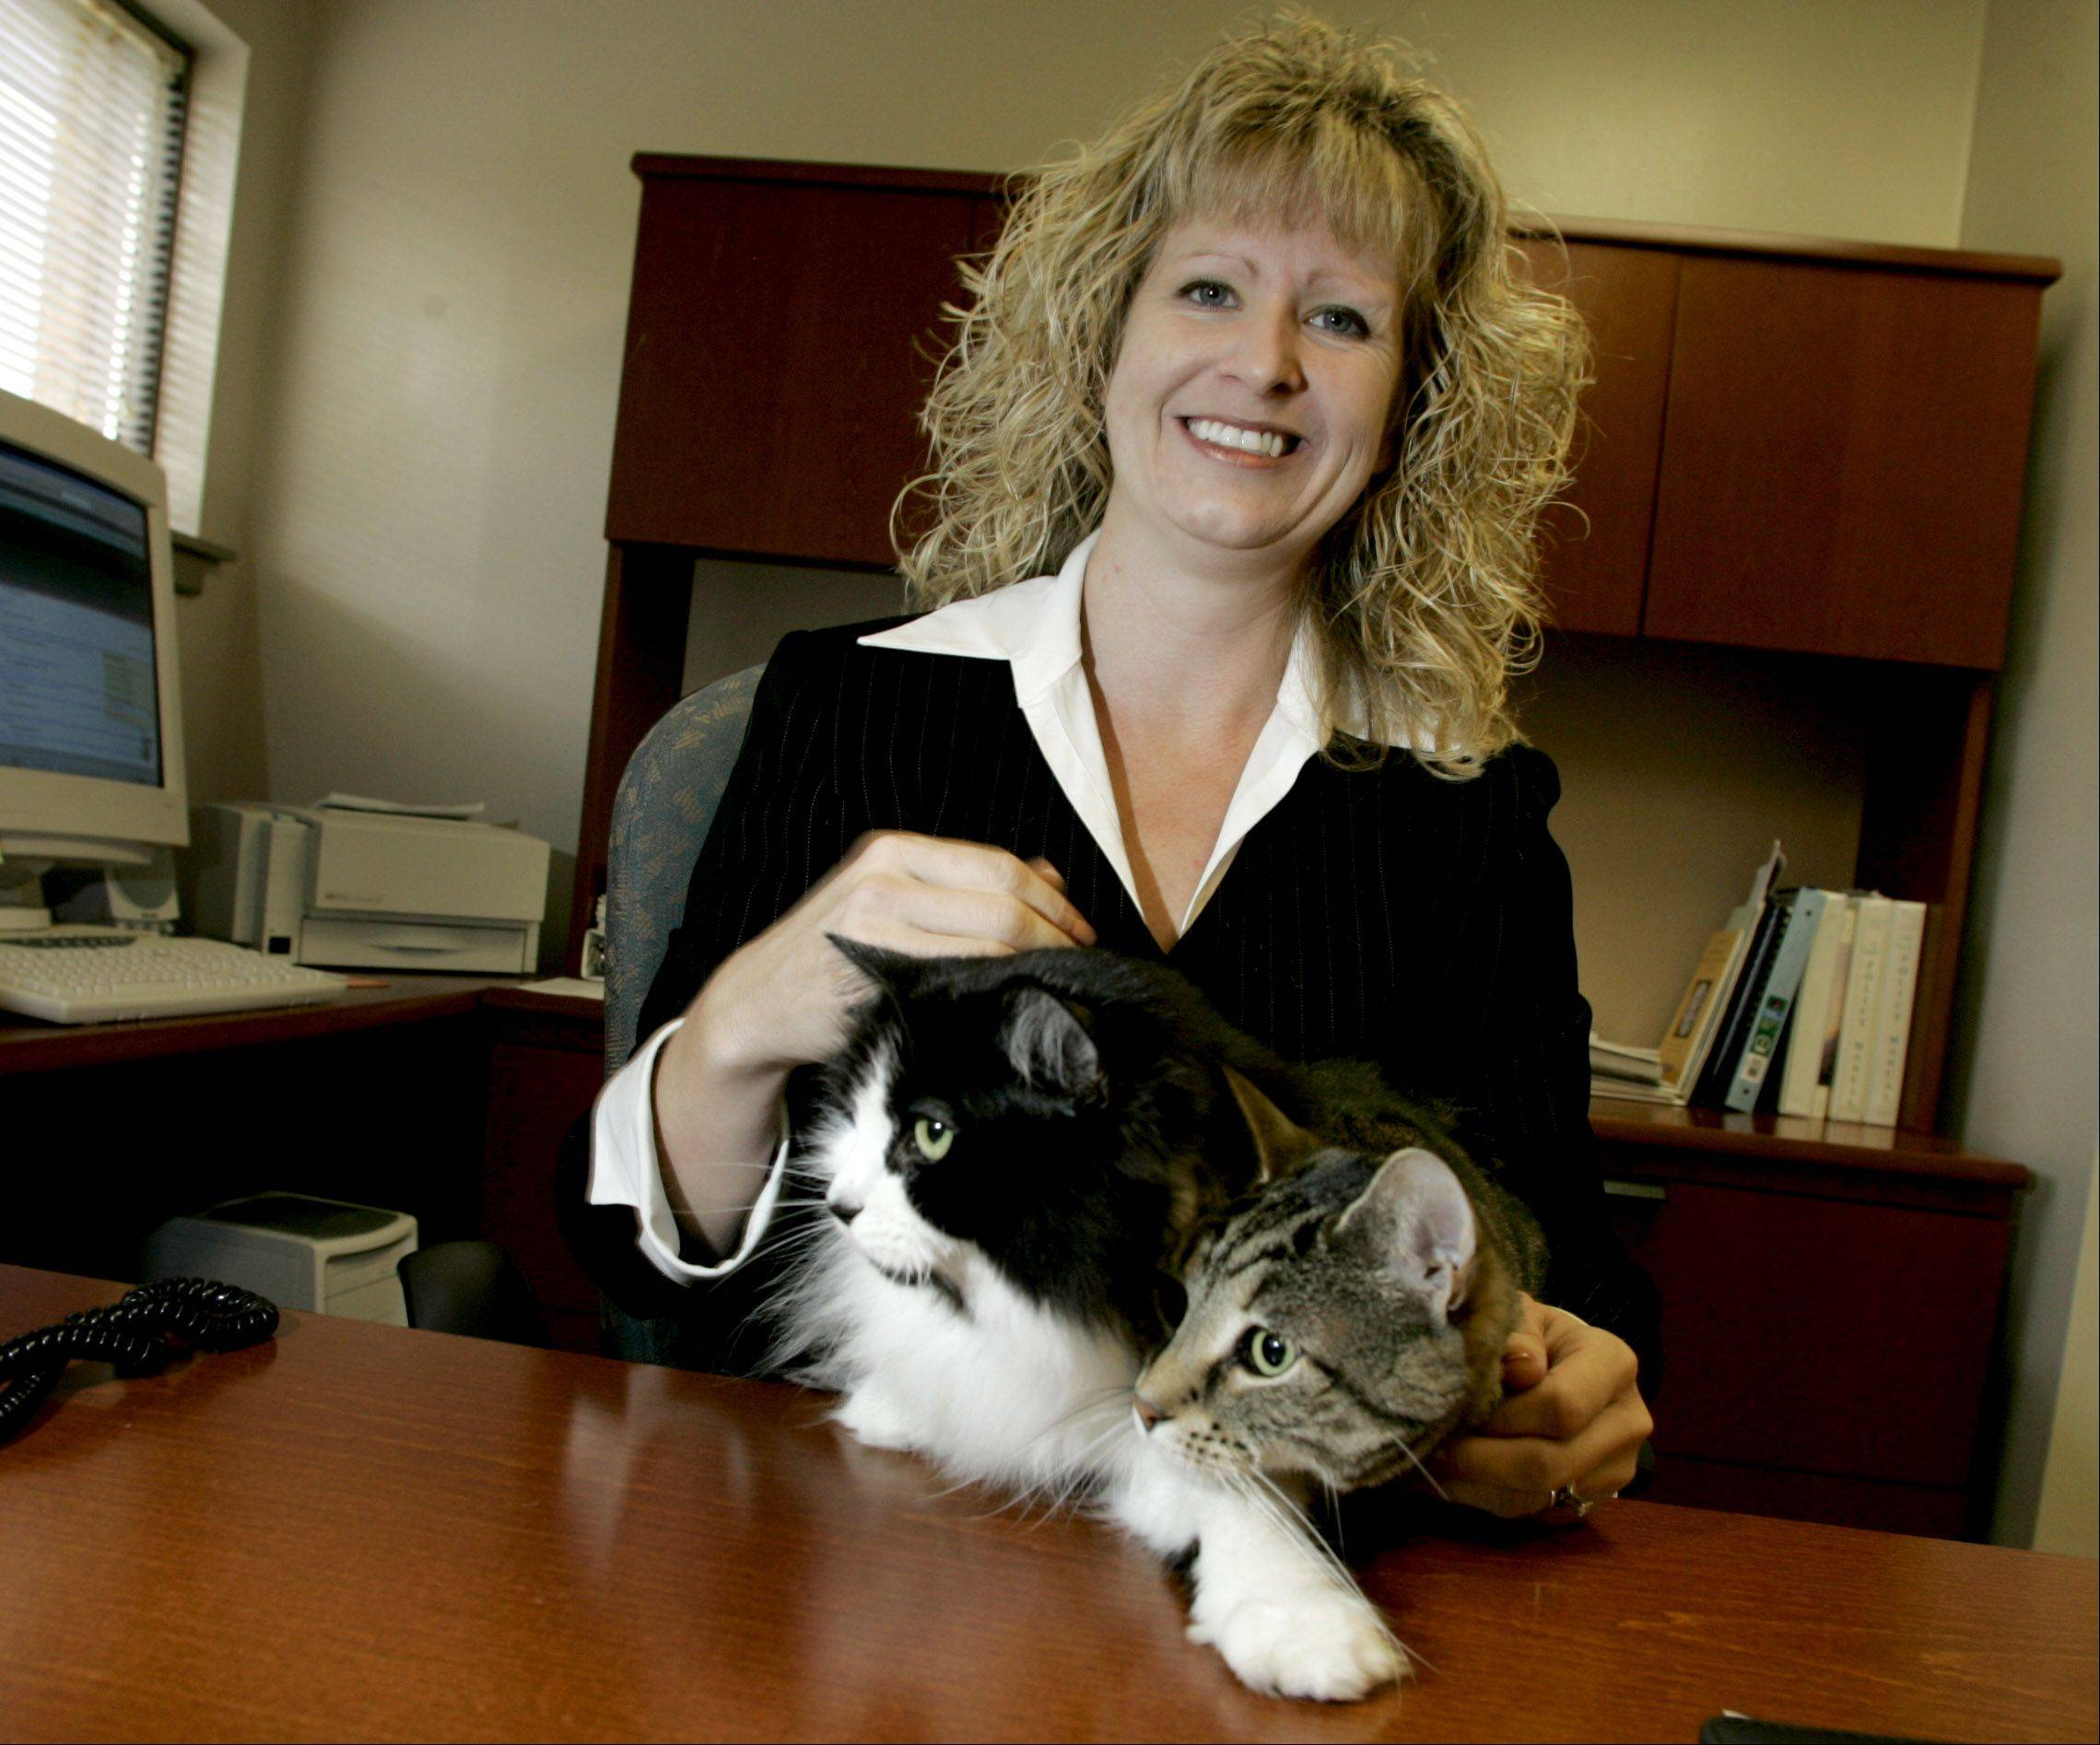 A federal lawsuit alleges DuPage County discriminated against Kerry Vinkler when it fired her from her former job as the director of Dupage Animal Care and Control.